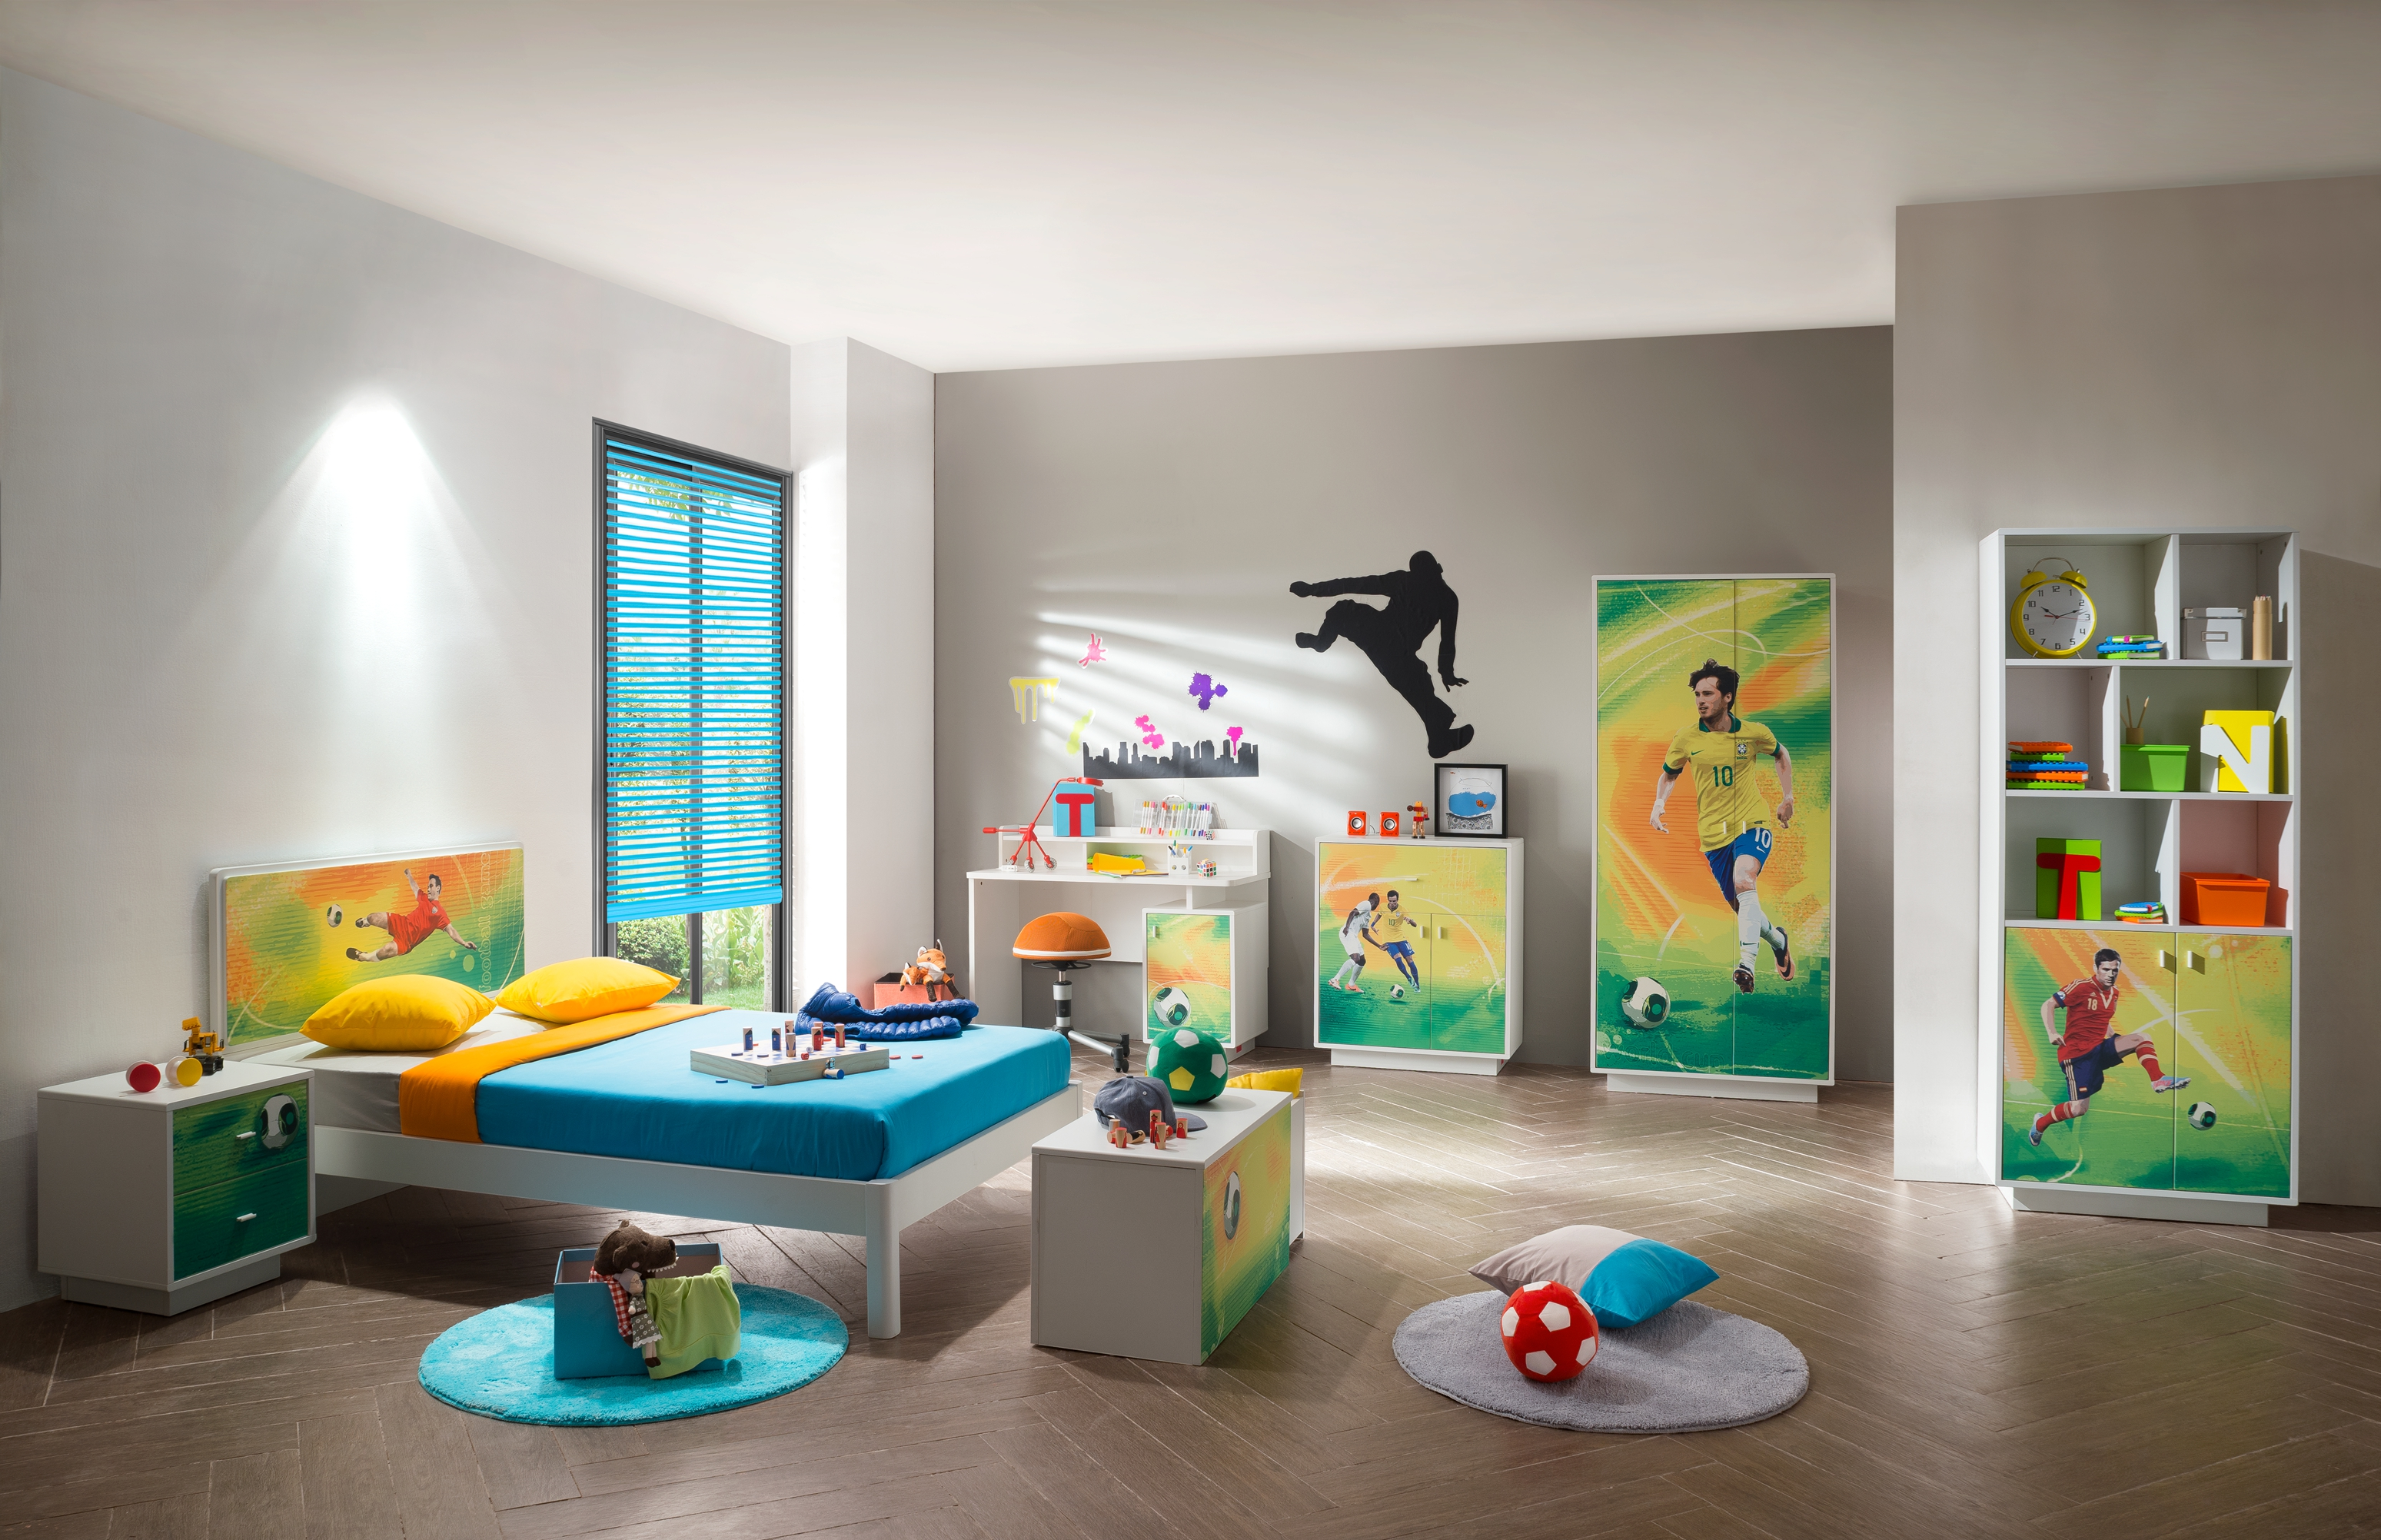 Kids Room Decor Ideas For The Urban Compact Home Alex Daisy Blogs